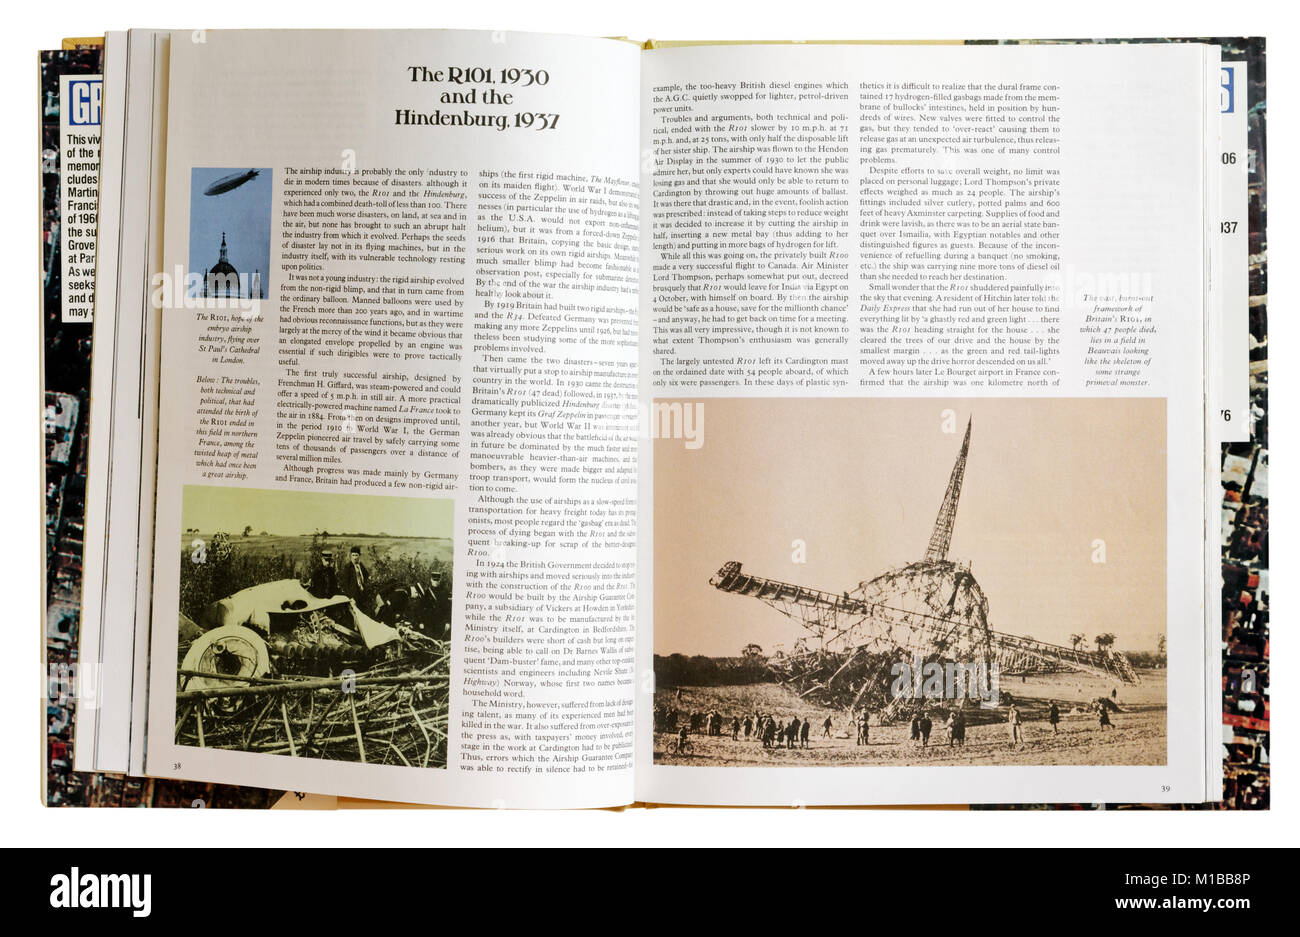 A book of disasters open to the page about the crash of R101 and the Hindenburg - Stock Image